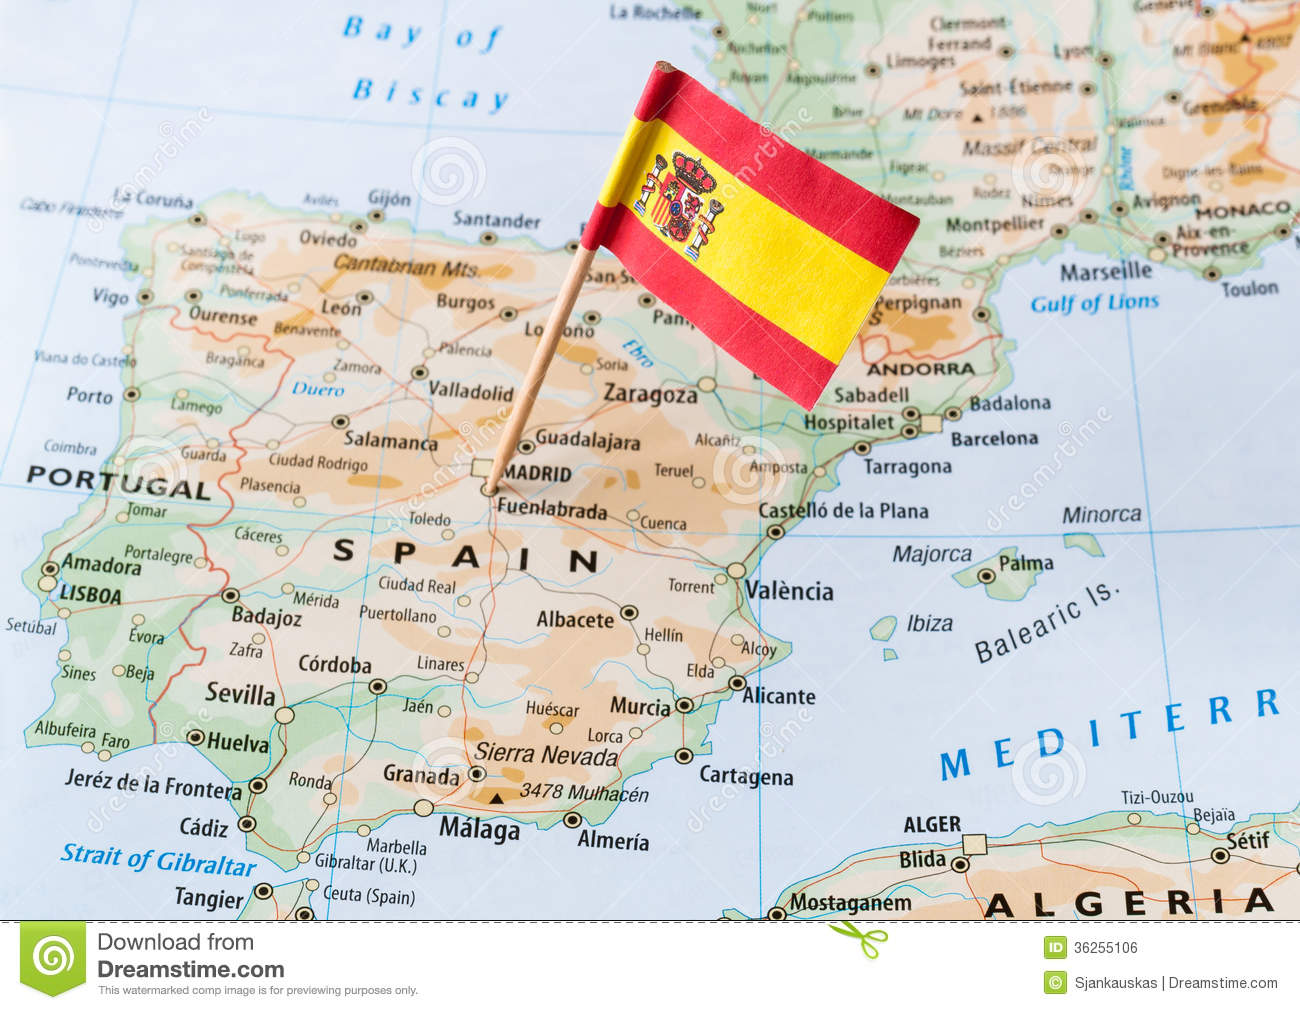 Spain Flag On Map Royalty Free Stock Image - Image: 36255106